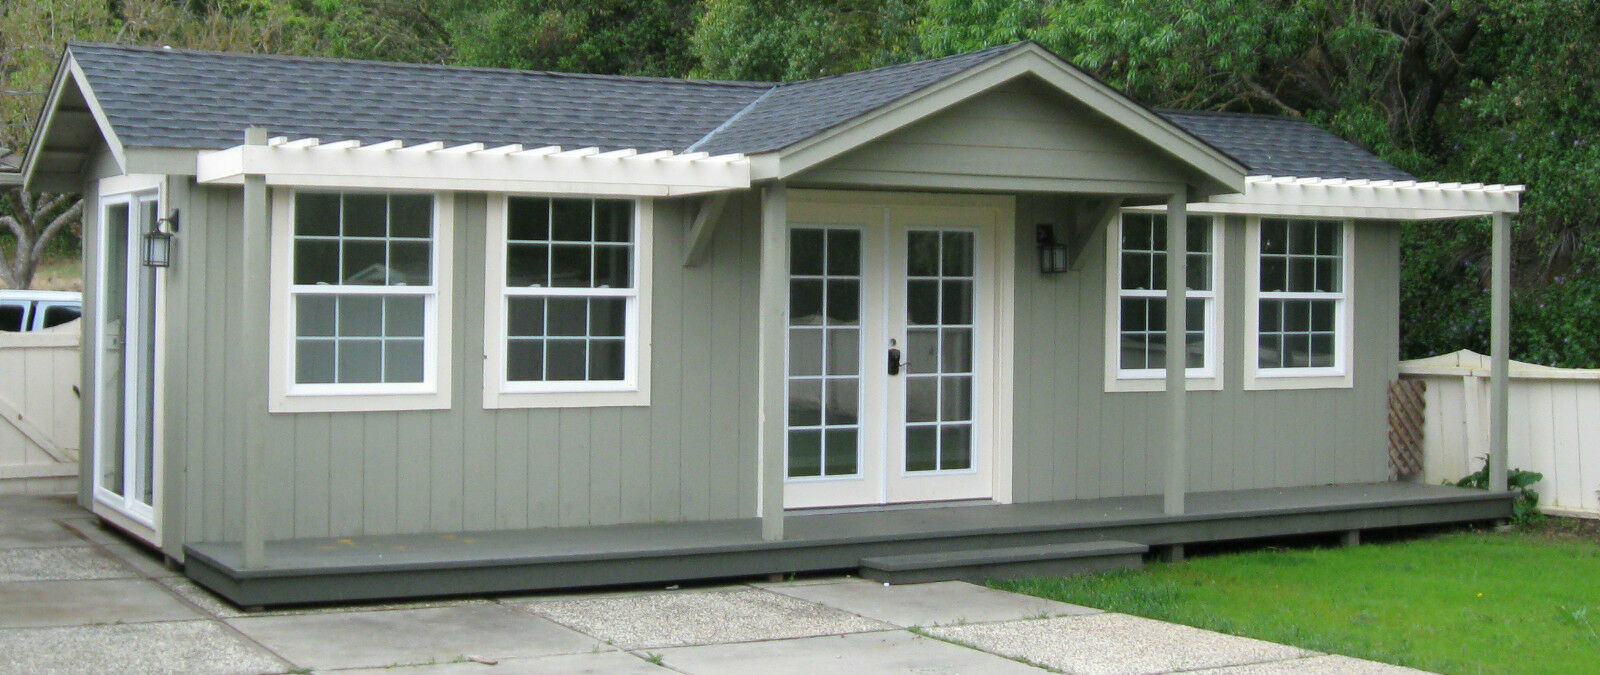 20 X 30 Guest House Cottage Modular Cabin 271218537186 on 16x40 cabin roof system